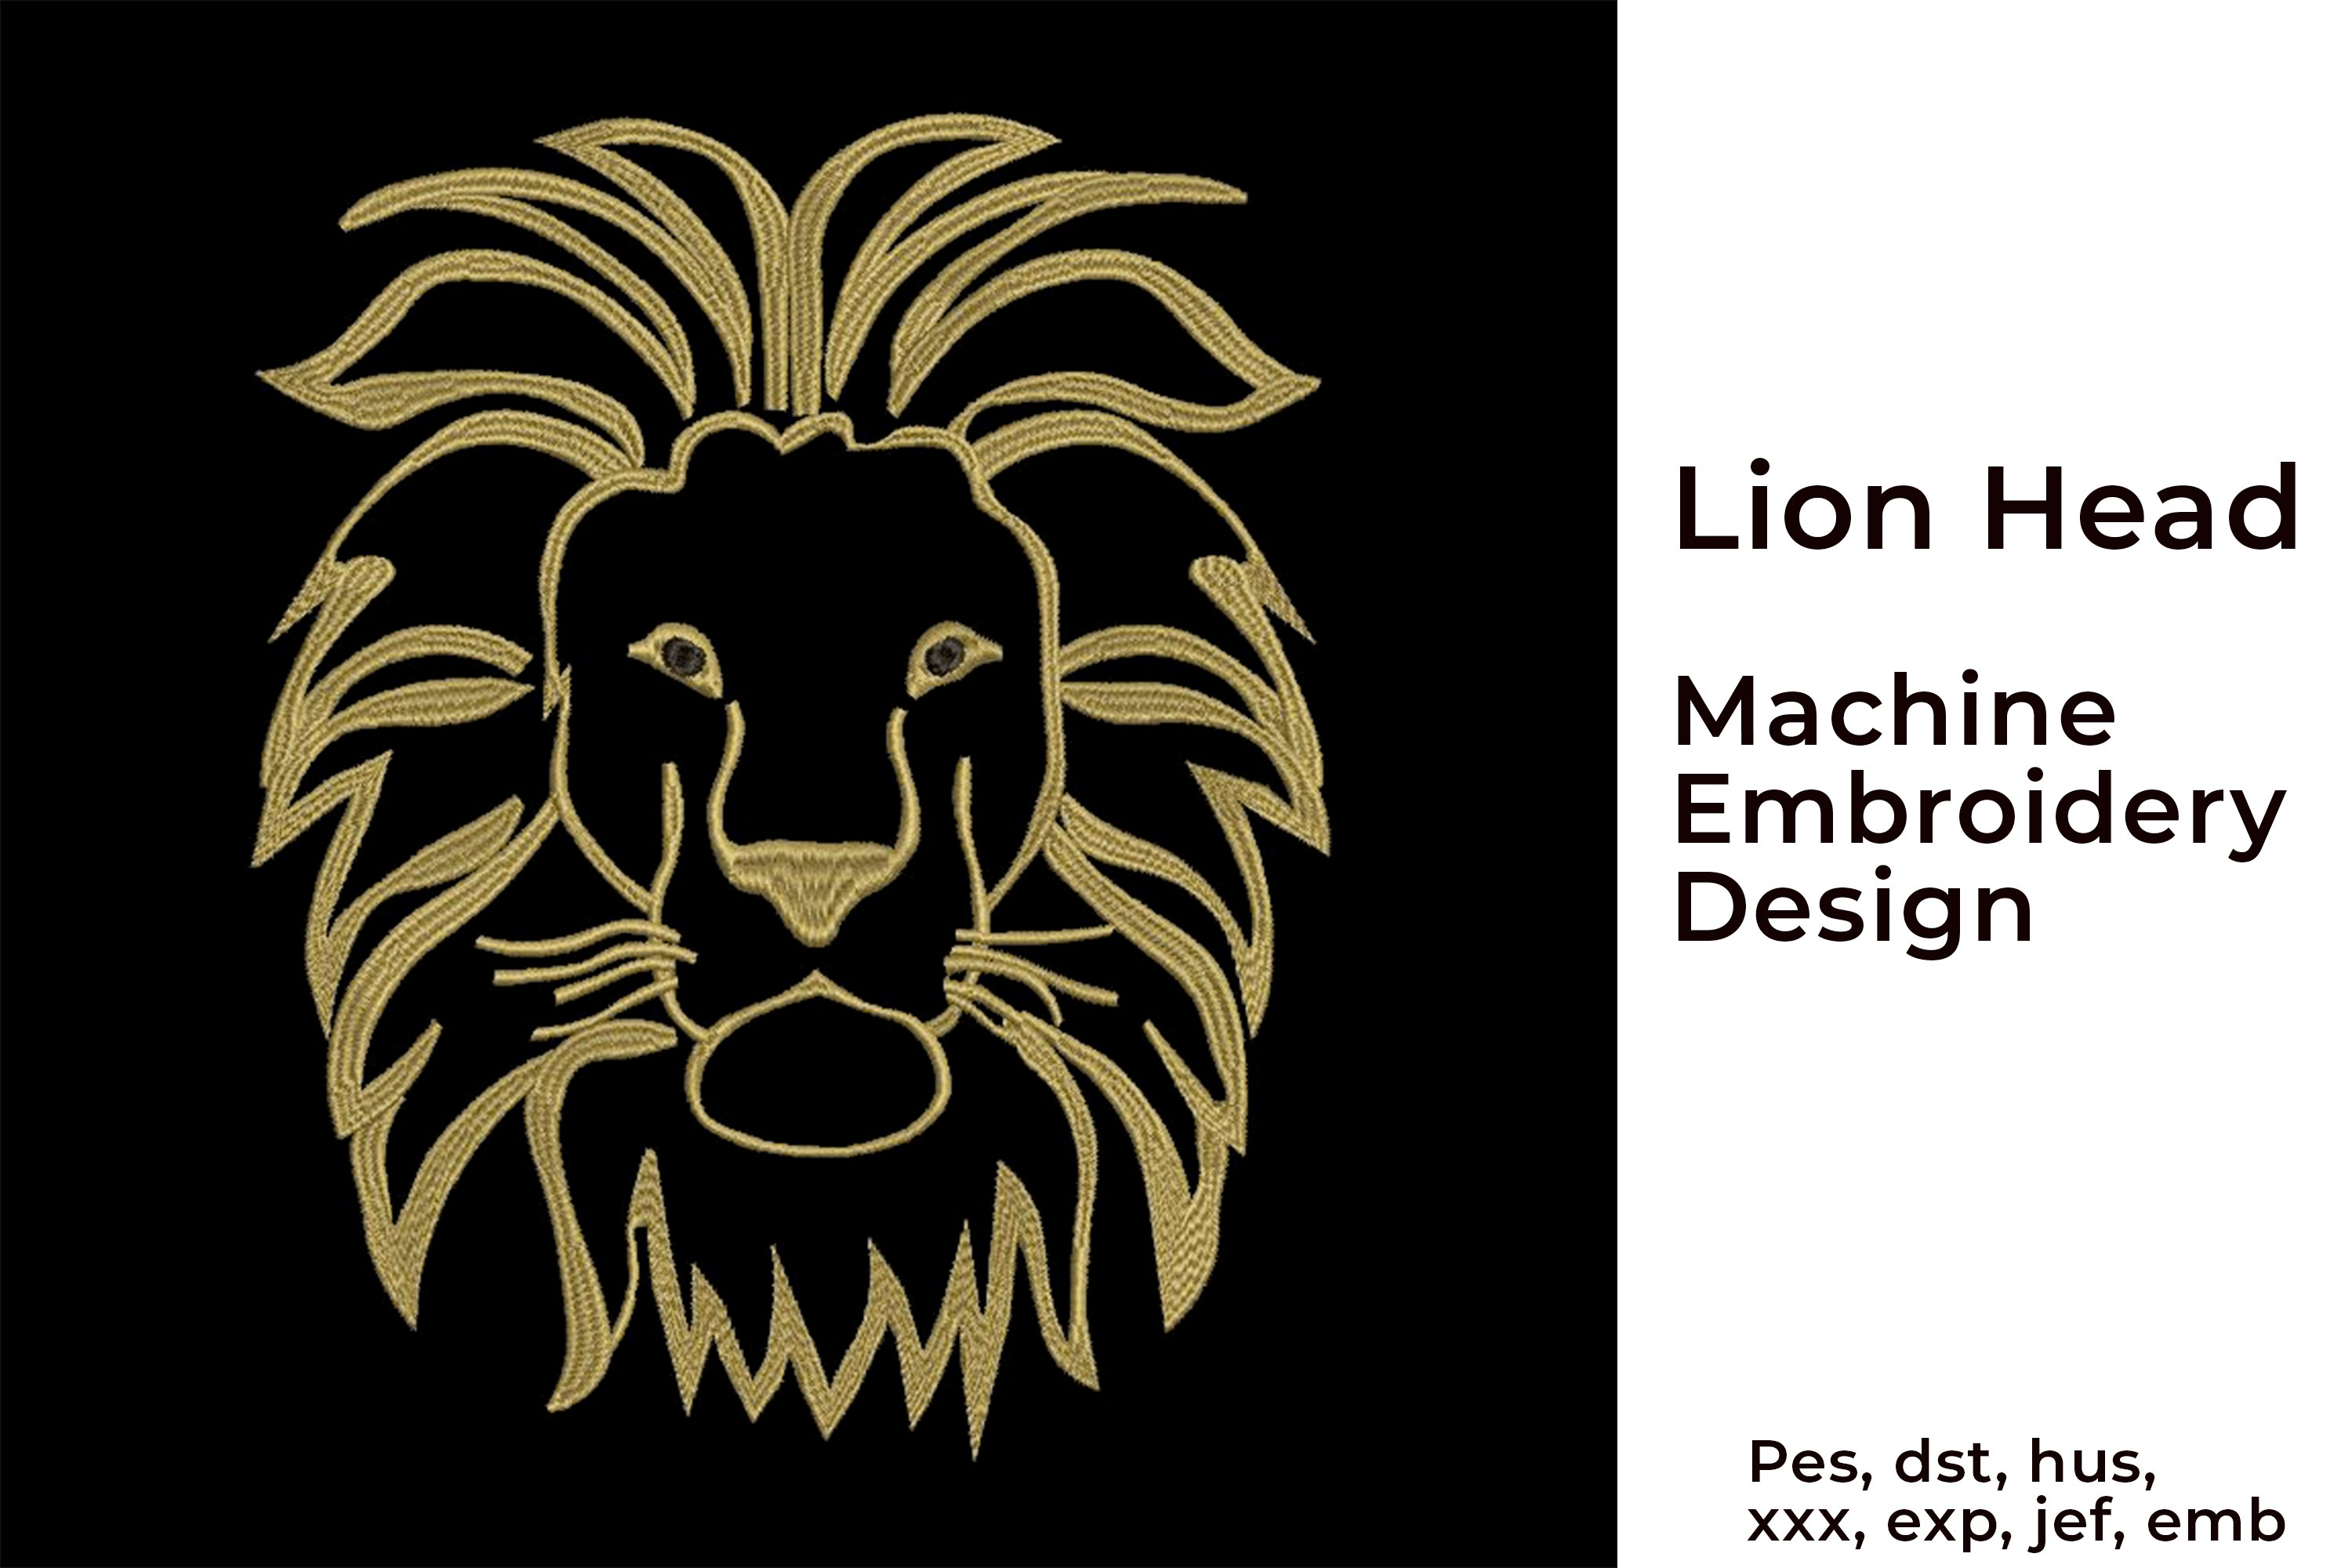 Lion Head Machine Embroidery Design Lion Face Outline Emb 865543 Designs Design Bundles Lion outline drawing barca fontanacountryinn com, lion face outline drawing collection of 25 outline lion head , entry 60 by dashlash2411 for lion drawing outline freelancer. lion head machine embroidery design lion face outline emb